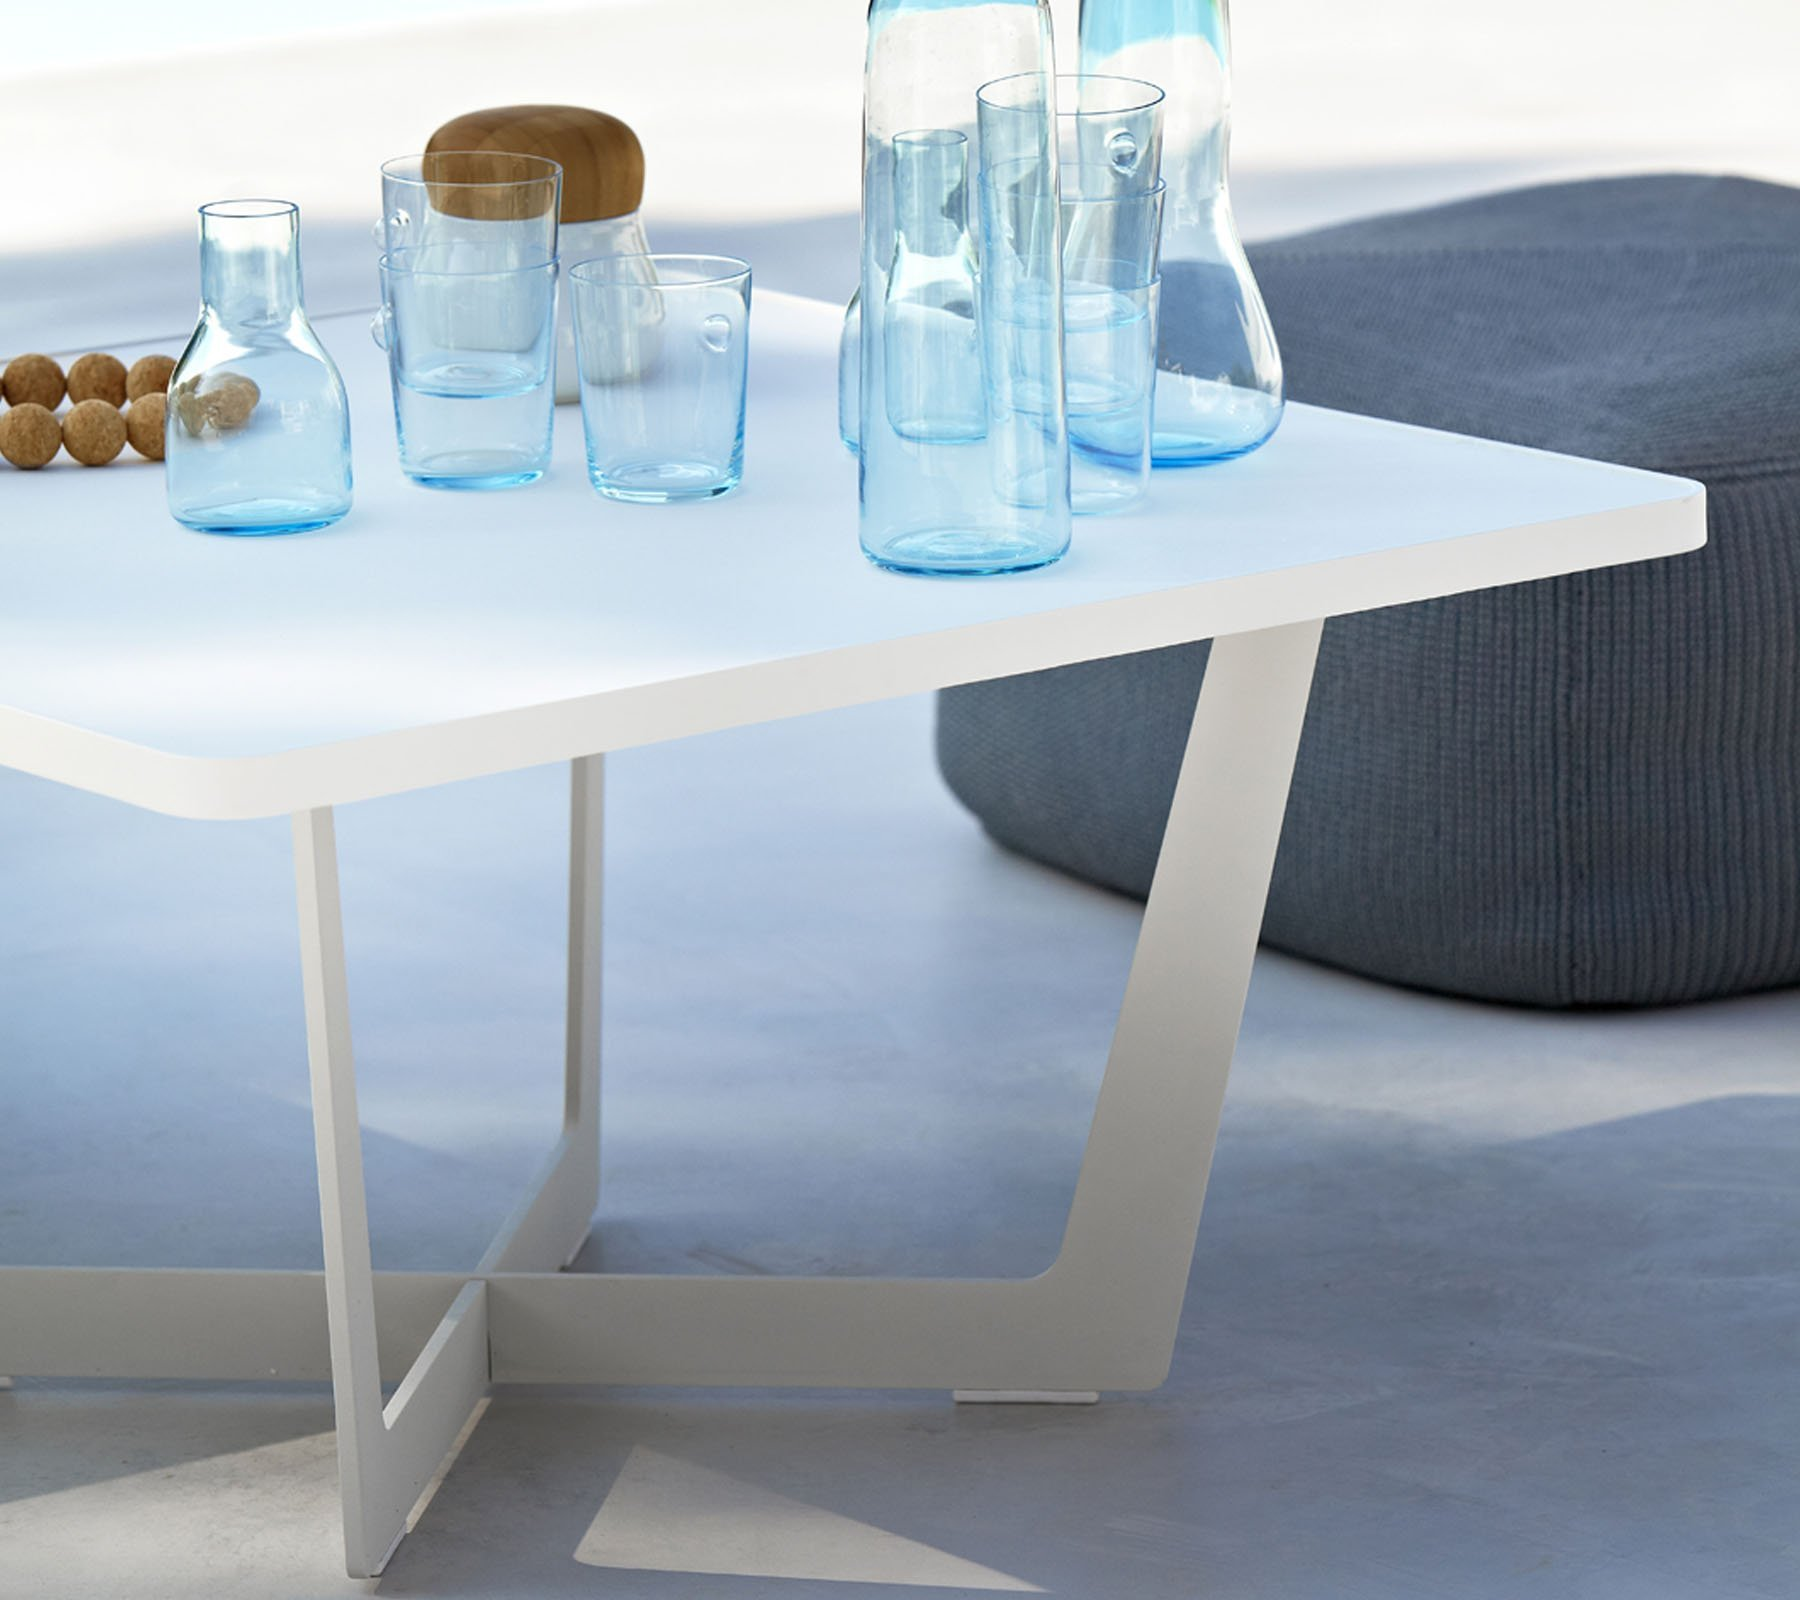 Time Out Coffee Table from Cane-line, designed by Strand+Hvass